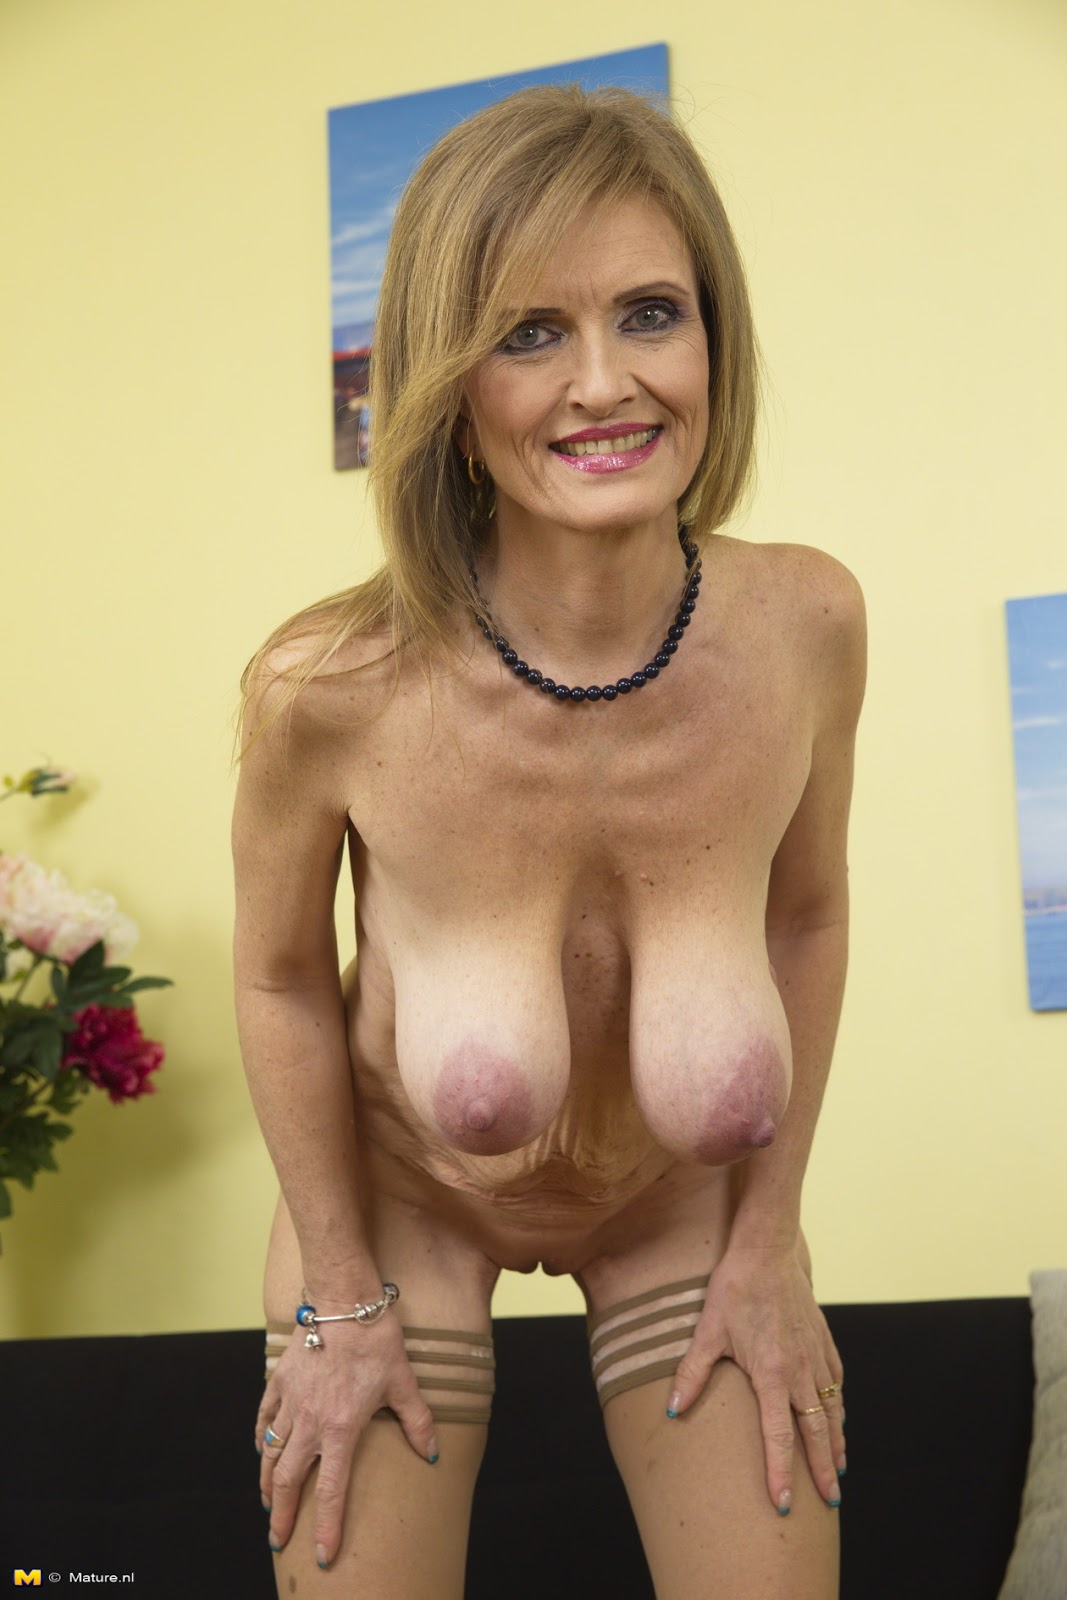 archive of old women .com: Naughty Tits Raina